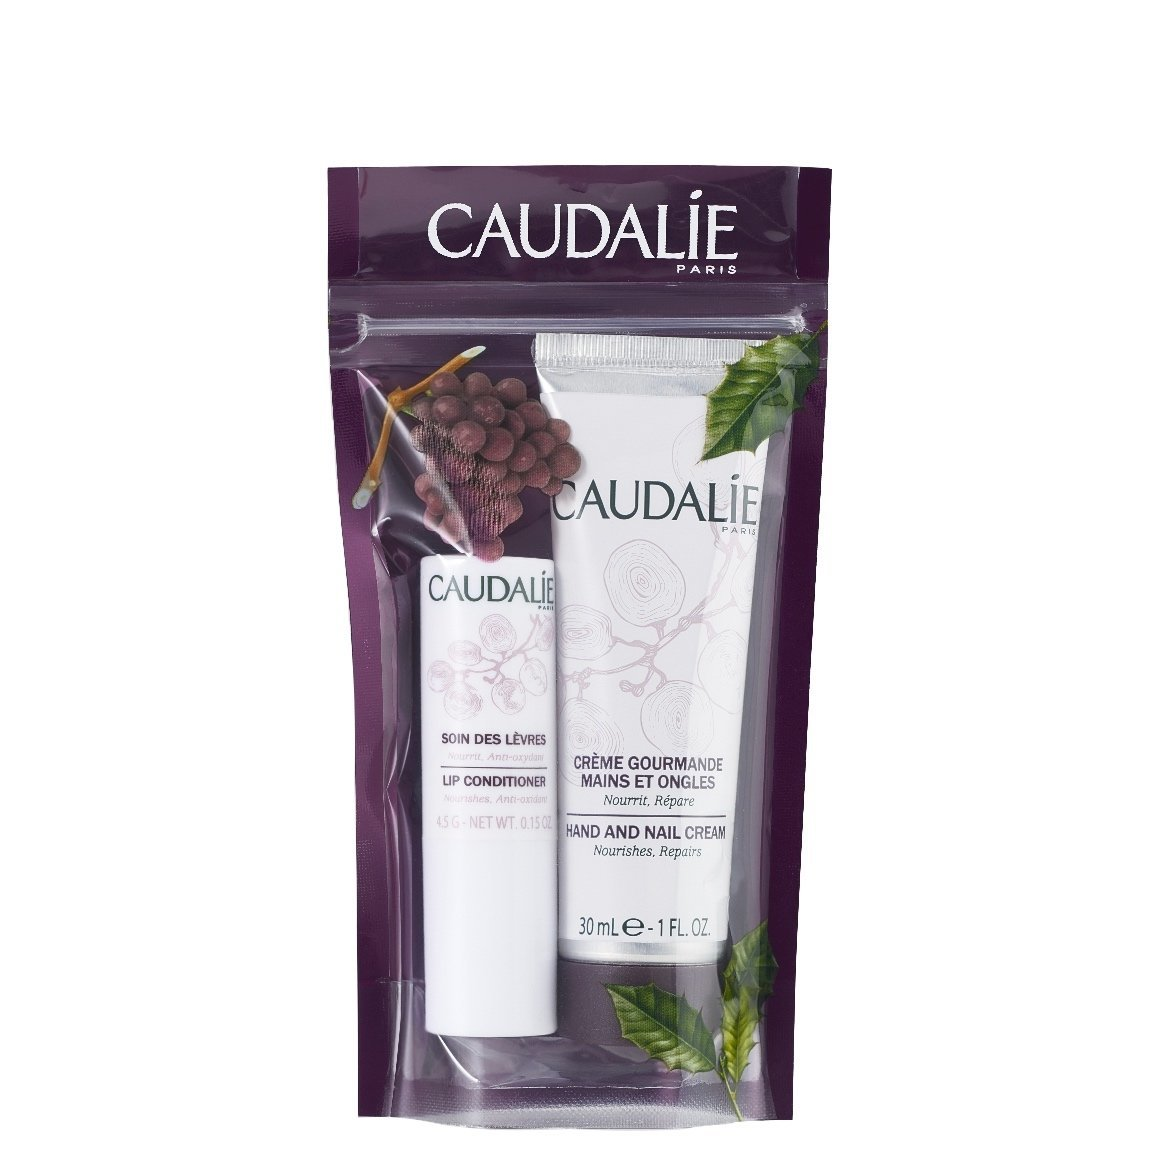 Caudalie Lip & Hand Duo product swatch.